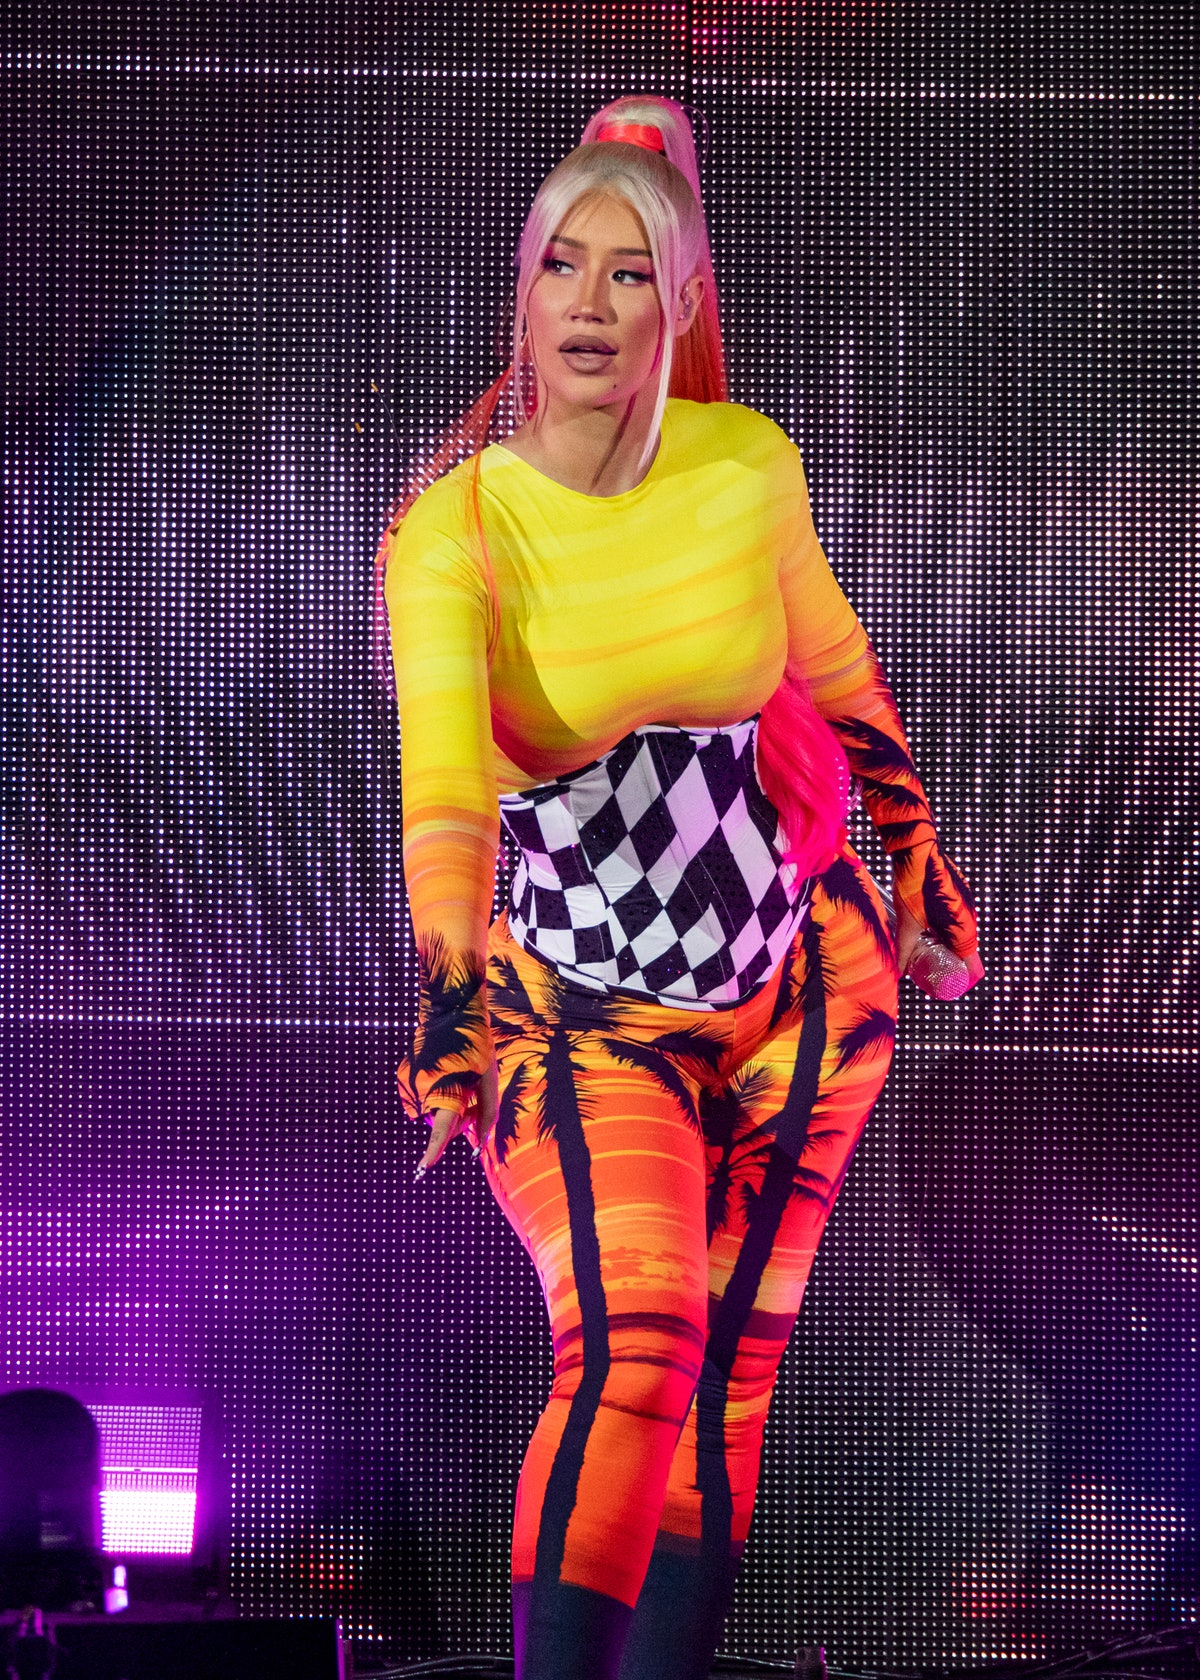 CLARKSTON, MICHIGAN - AUGUST 20: Iggy Azalea performs at DTE Energy Music Theatre on August 20, 2021...